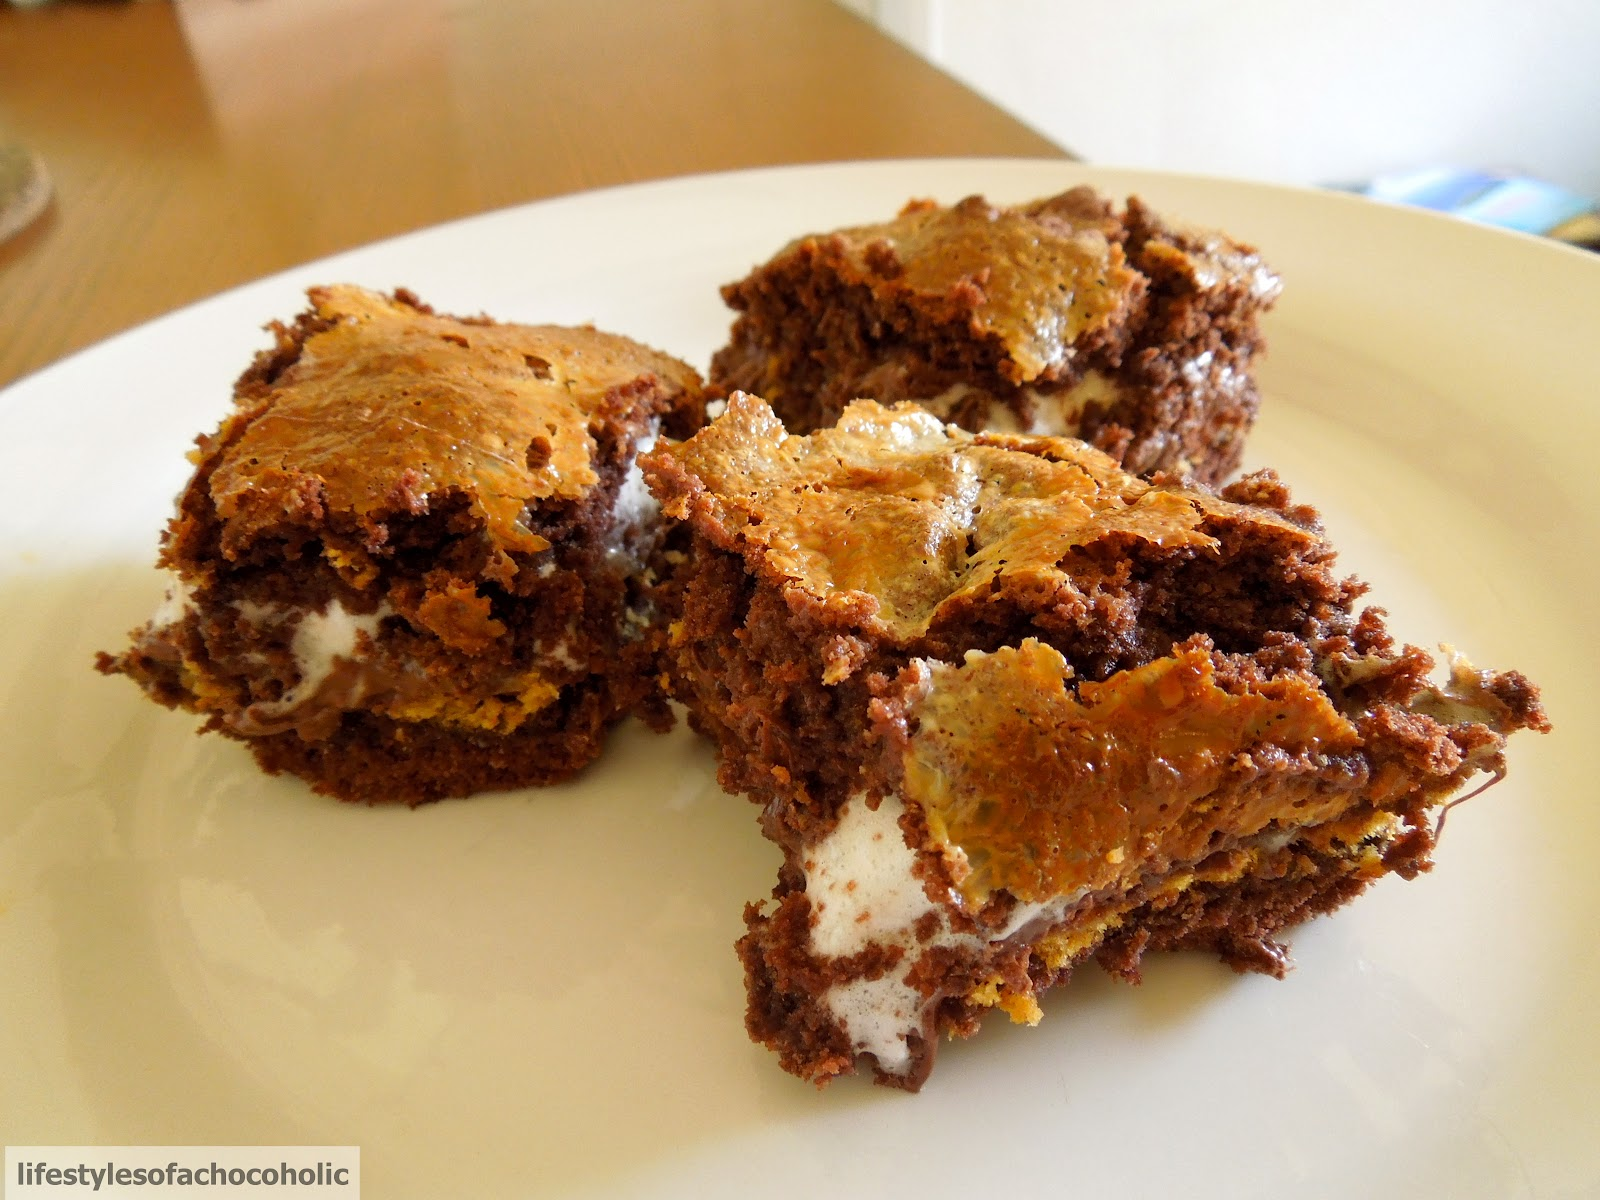 Chocolate Smore's Gooey Bars - Confessions of a Baking Queen